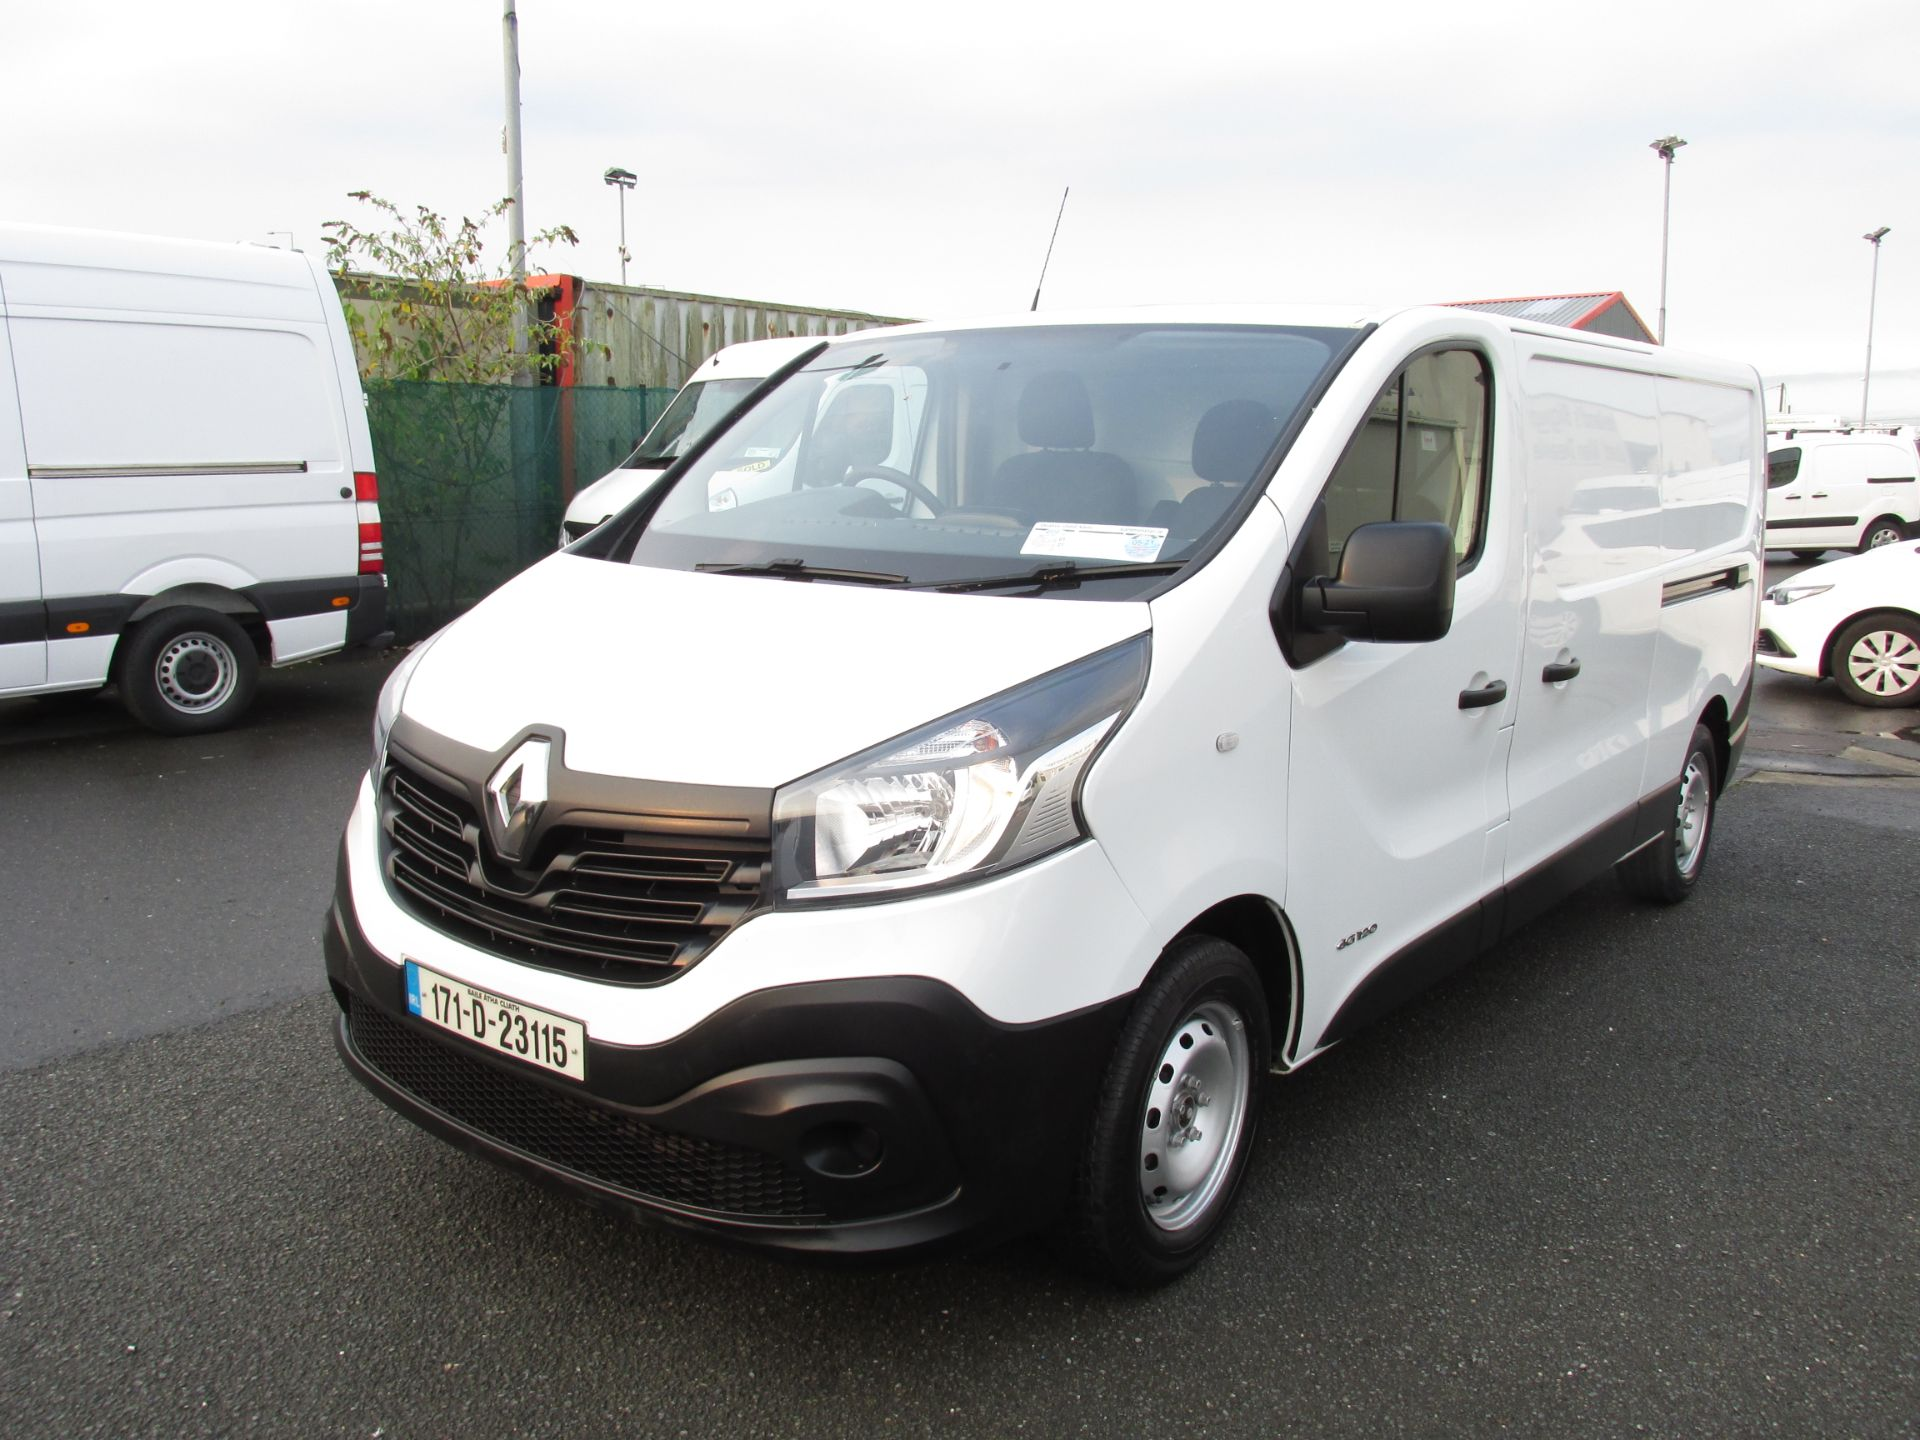 2017 Renault Trafic LL29 DCI 120 Business 3DR (171D23115) Image 3